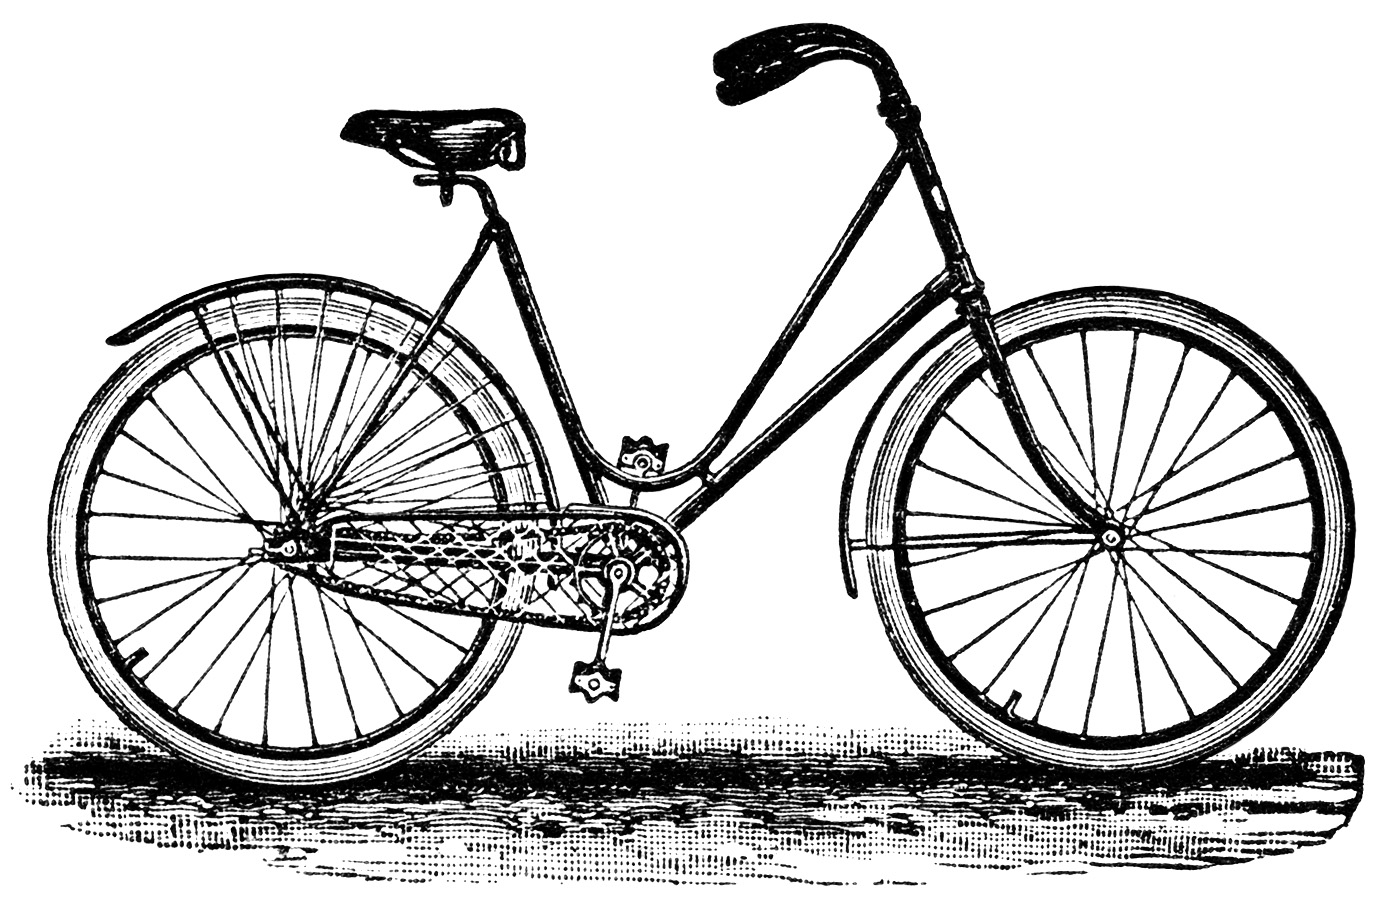 And A Black And White Clipart Version Of The Bicycle From The Ad